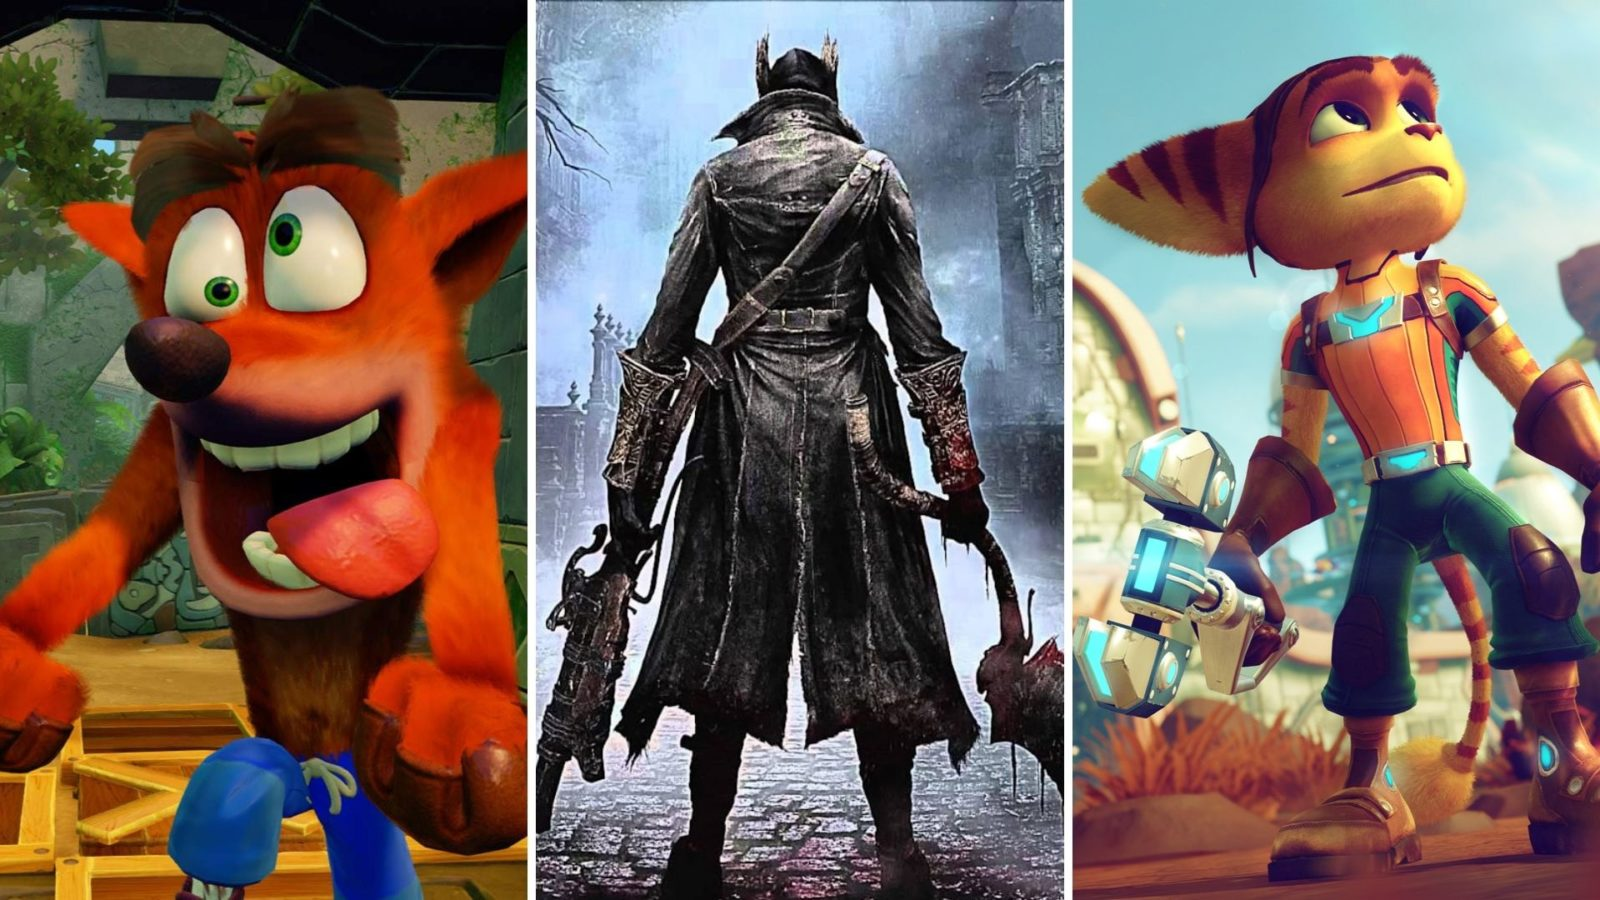 crash bandicoot, bloodborne hunter, ratchet in ps plus collection feature image